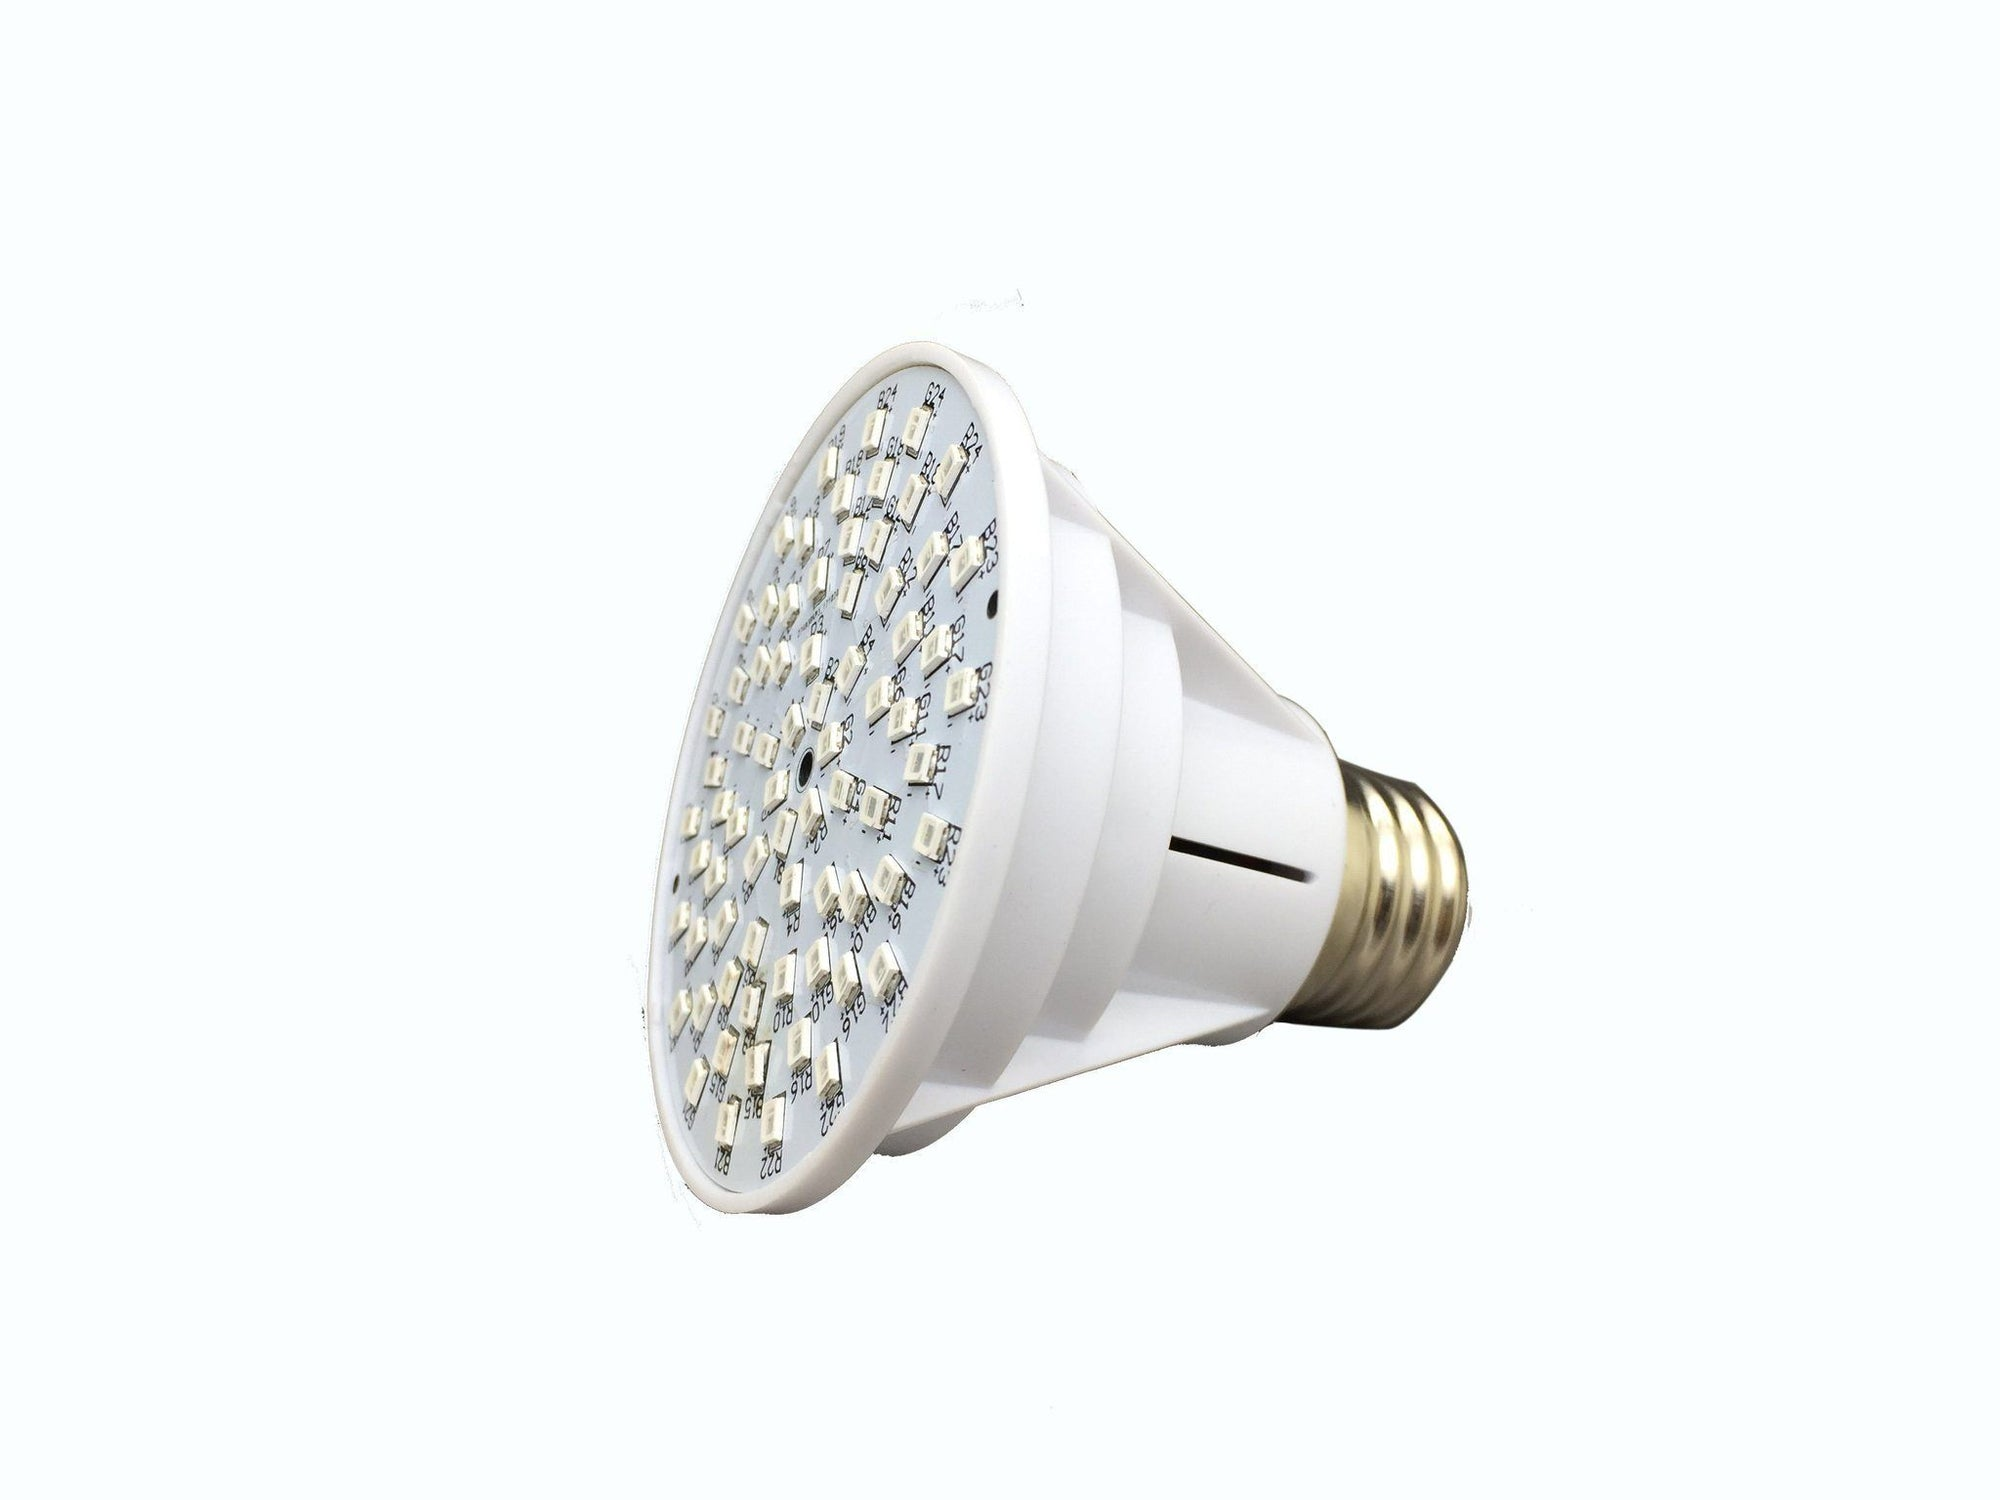 Pool Tone Pentair SpaBrite LED Bulb 1900 Lumens 120V Home & Garden > Lighting > Light Bulbs Pool Tone